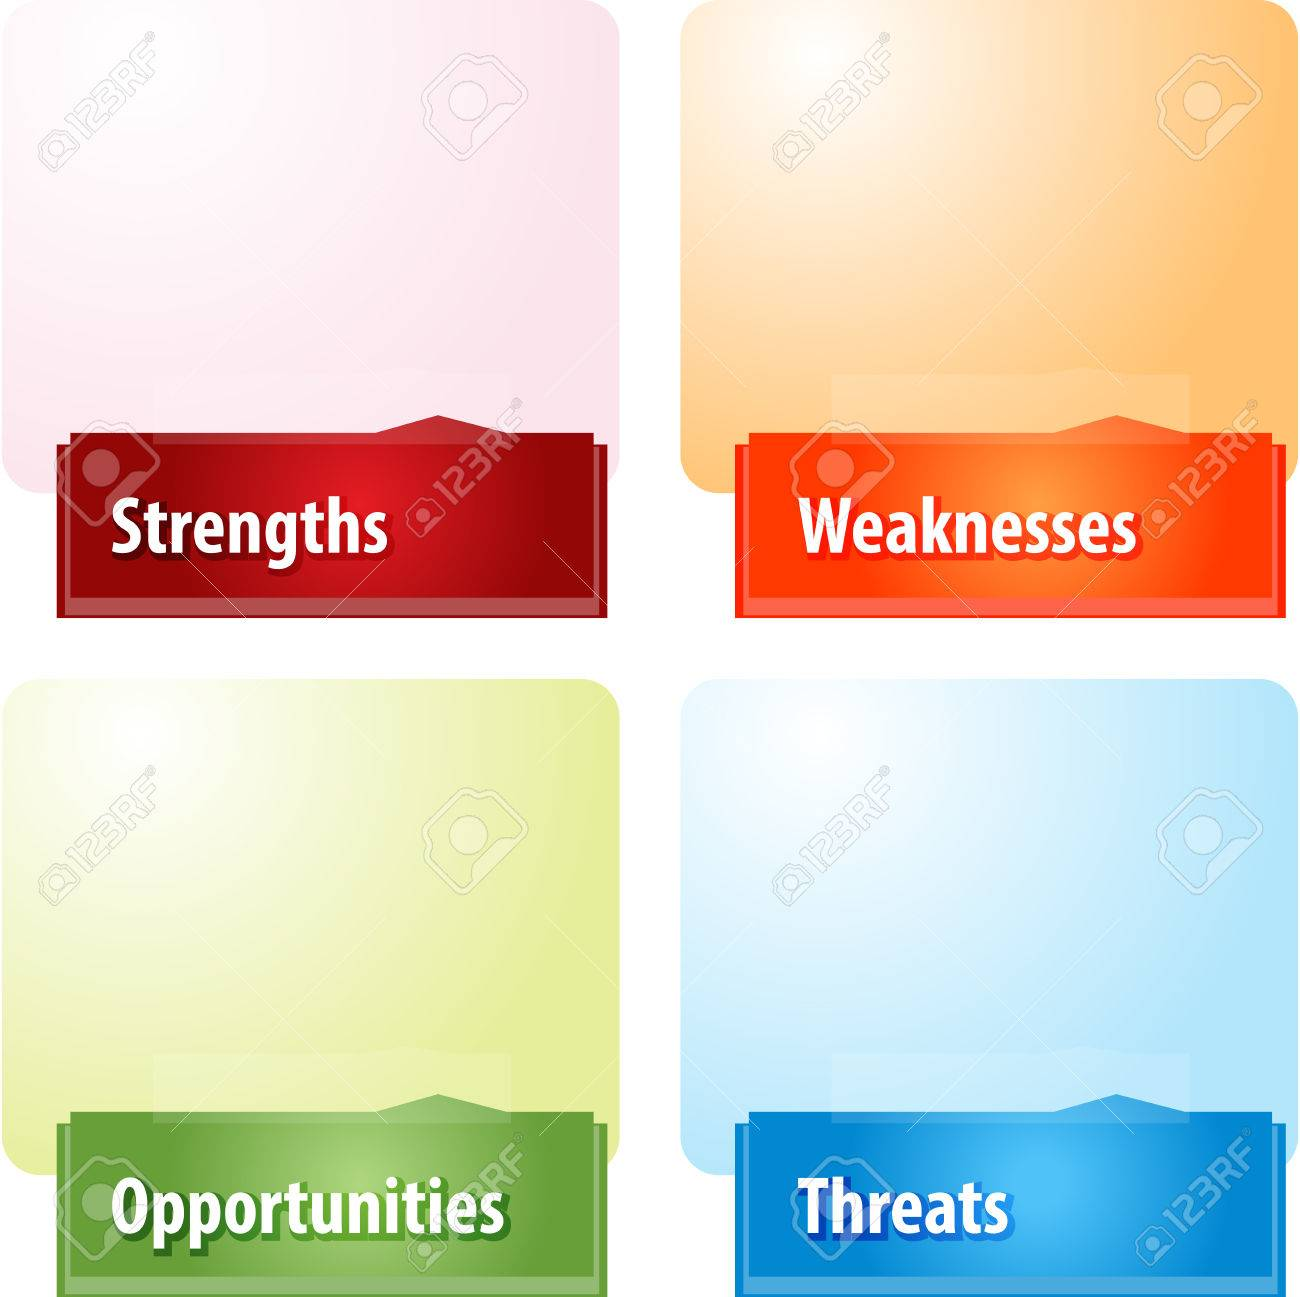 business strategy concept infographic diagram illustration of business strategy concept infographic diagram illustration of swot strengths weaknesses opportunities threats stock illustration 42545412